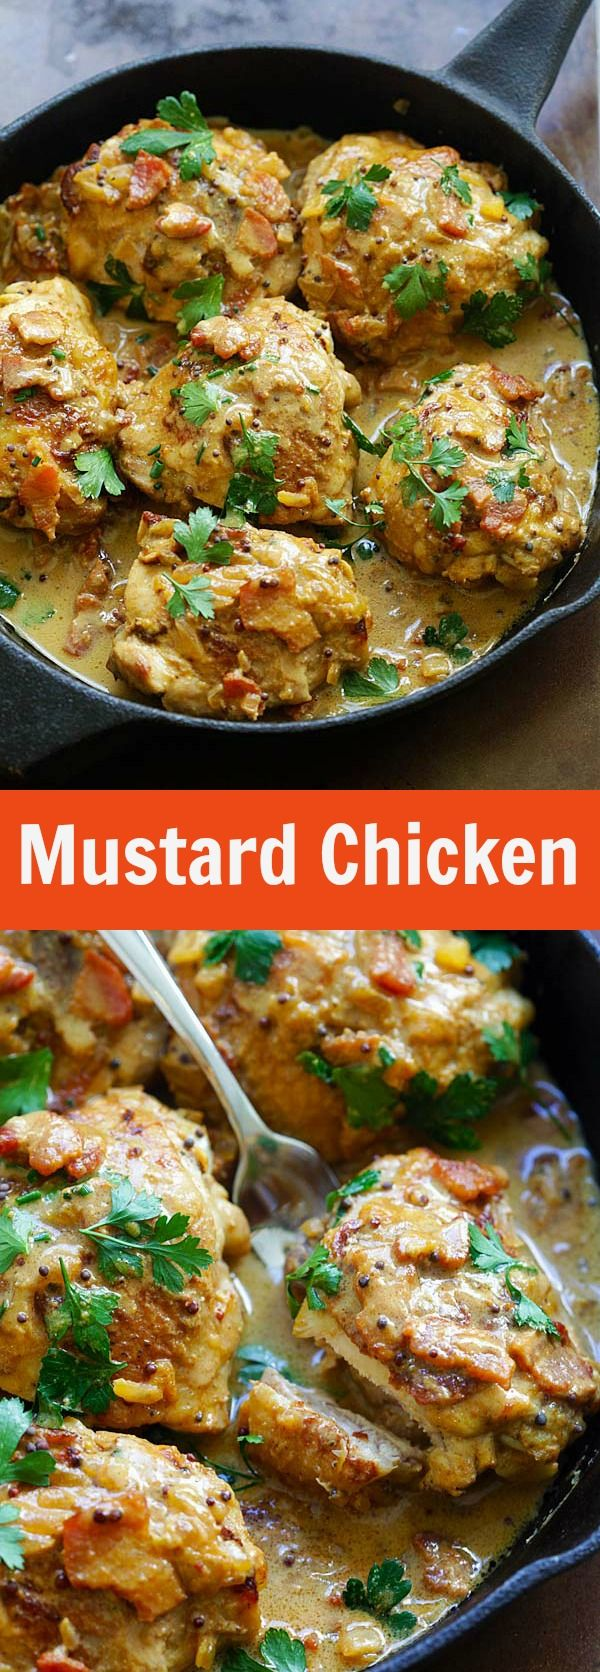 Mustard Chicken - the best mustard chicken recipe by David Lebovitz. Rich and crazy delicious mustard sauce with bacon and chicken thighs | rasamalaysia.com